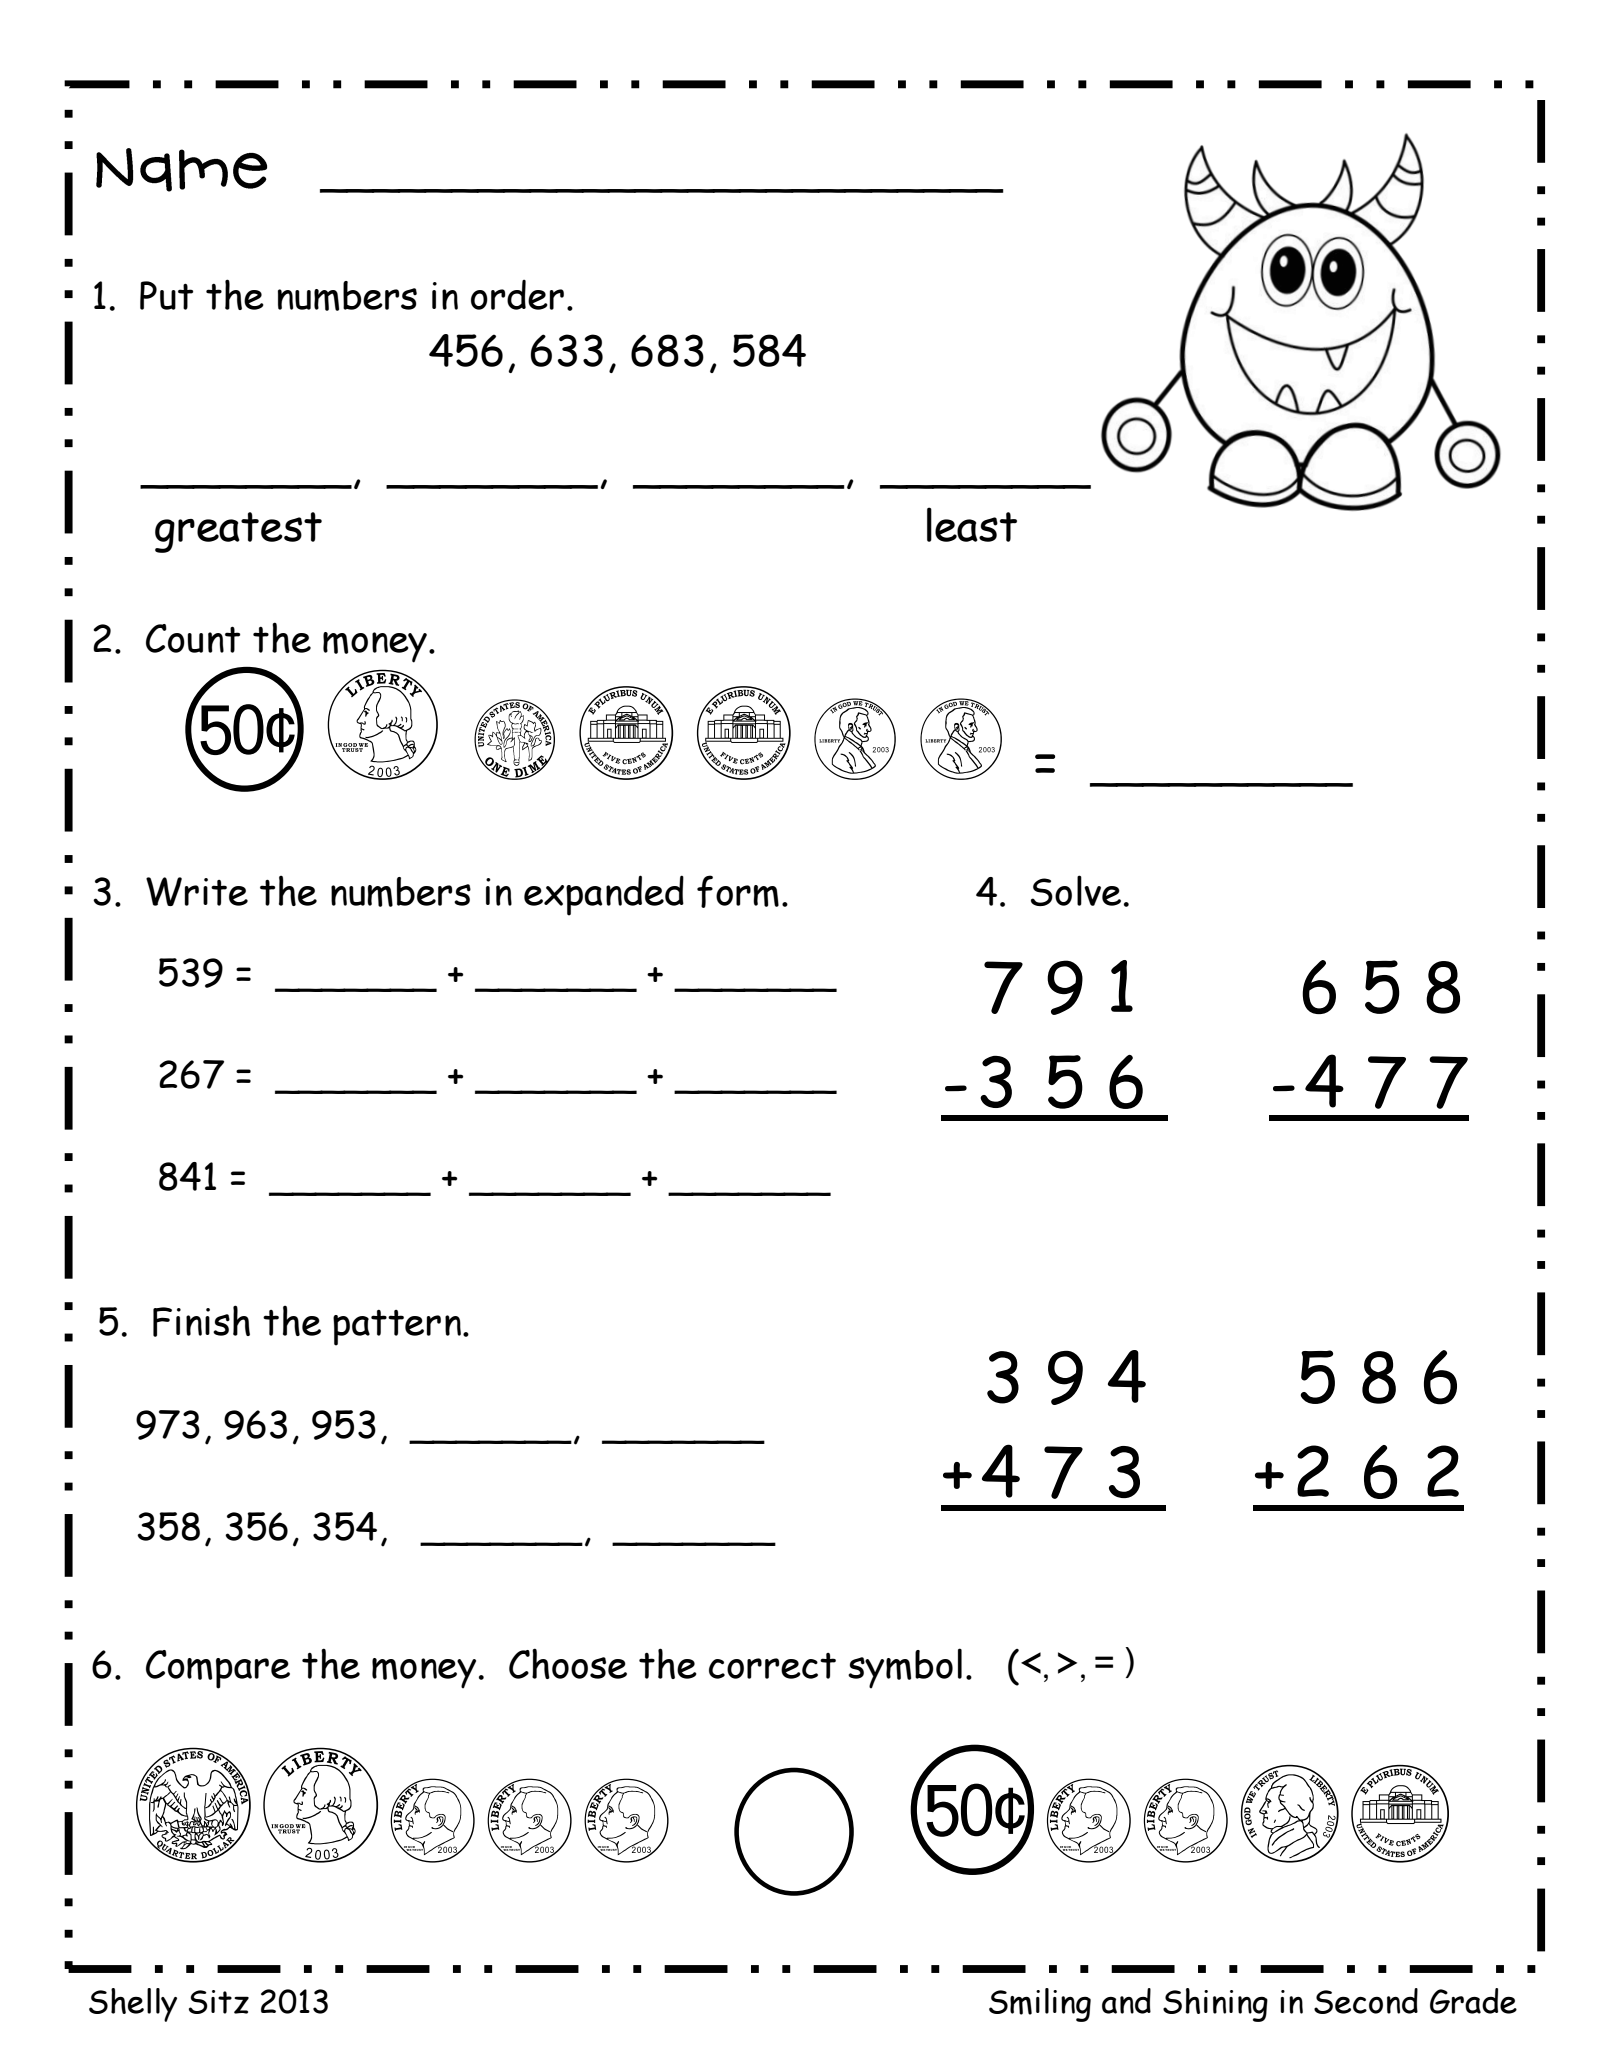 Pin En Maths Worksheet